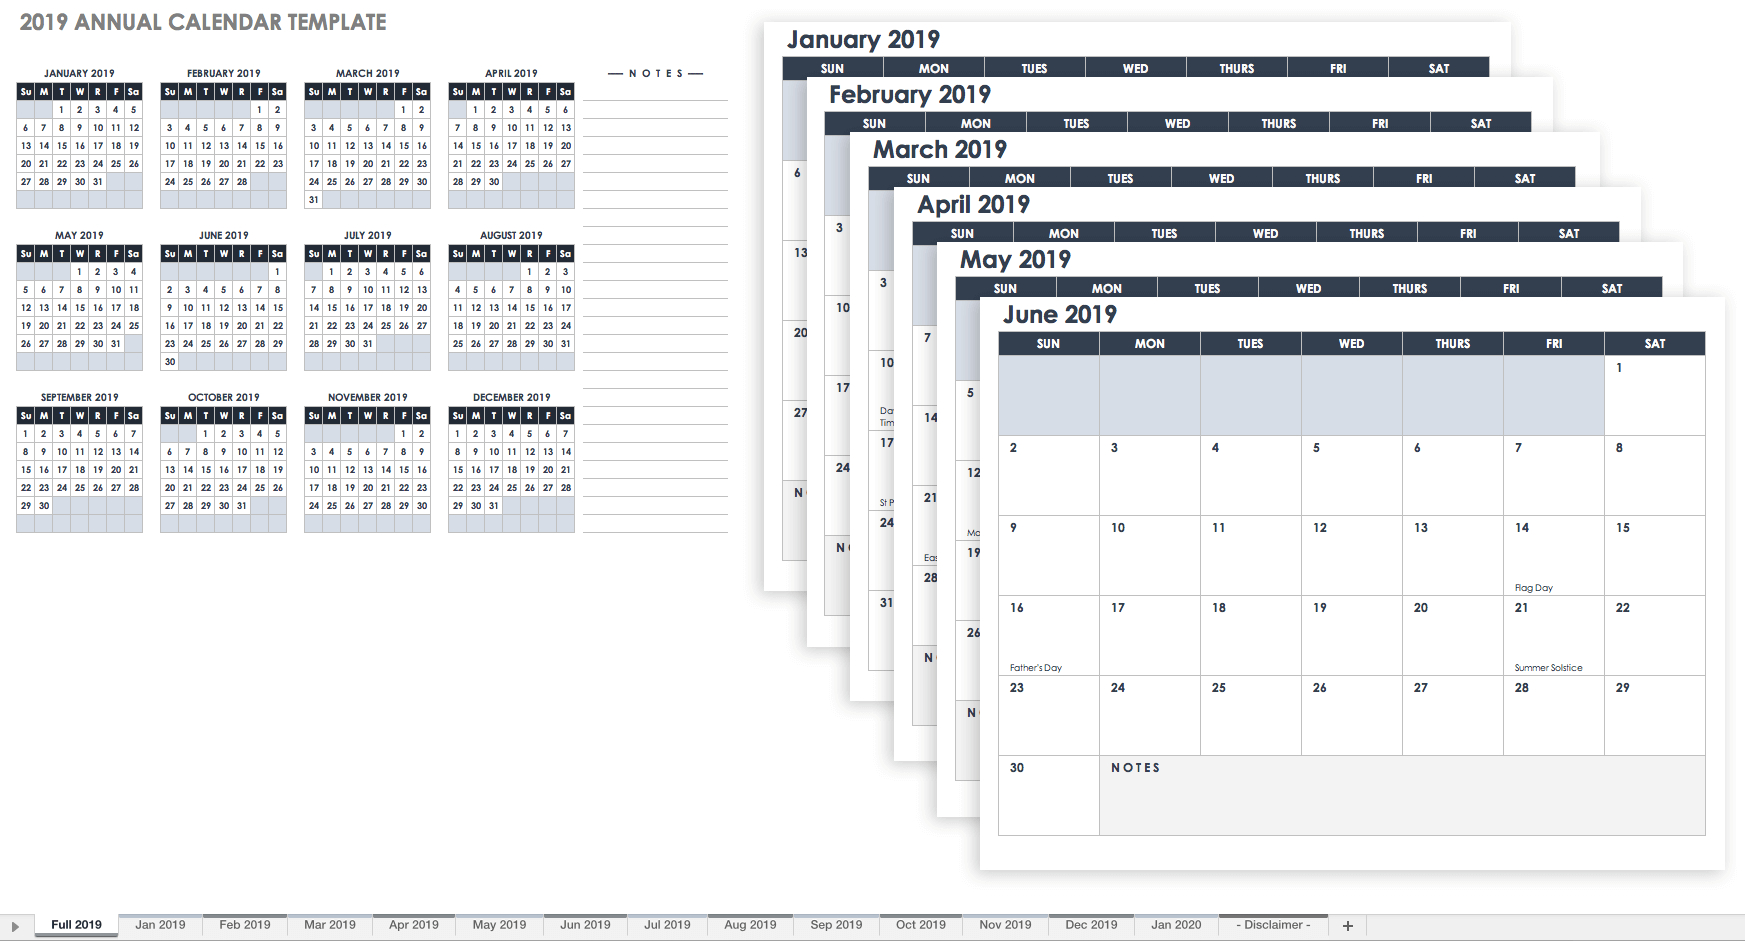 15 Free Monthly Calendar Templates | Smartsheet intended for Printable Calendar One Week Per Page 2020